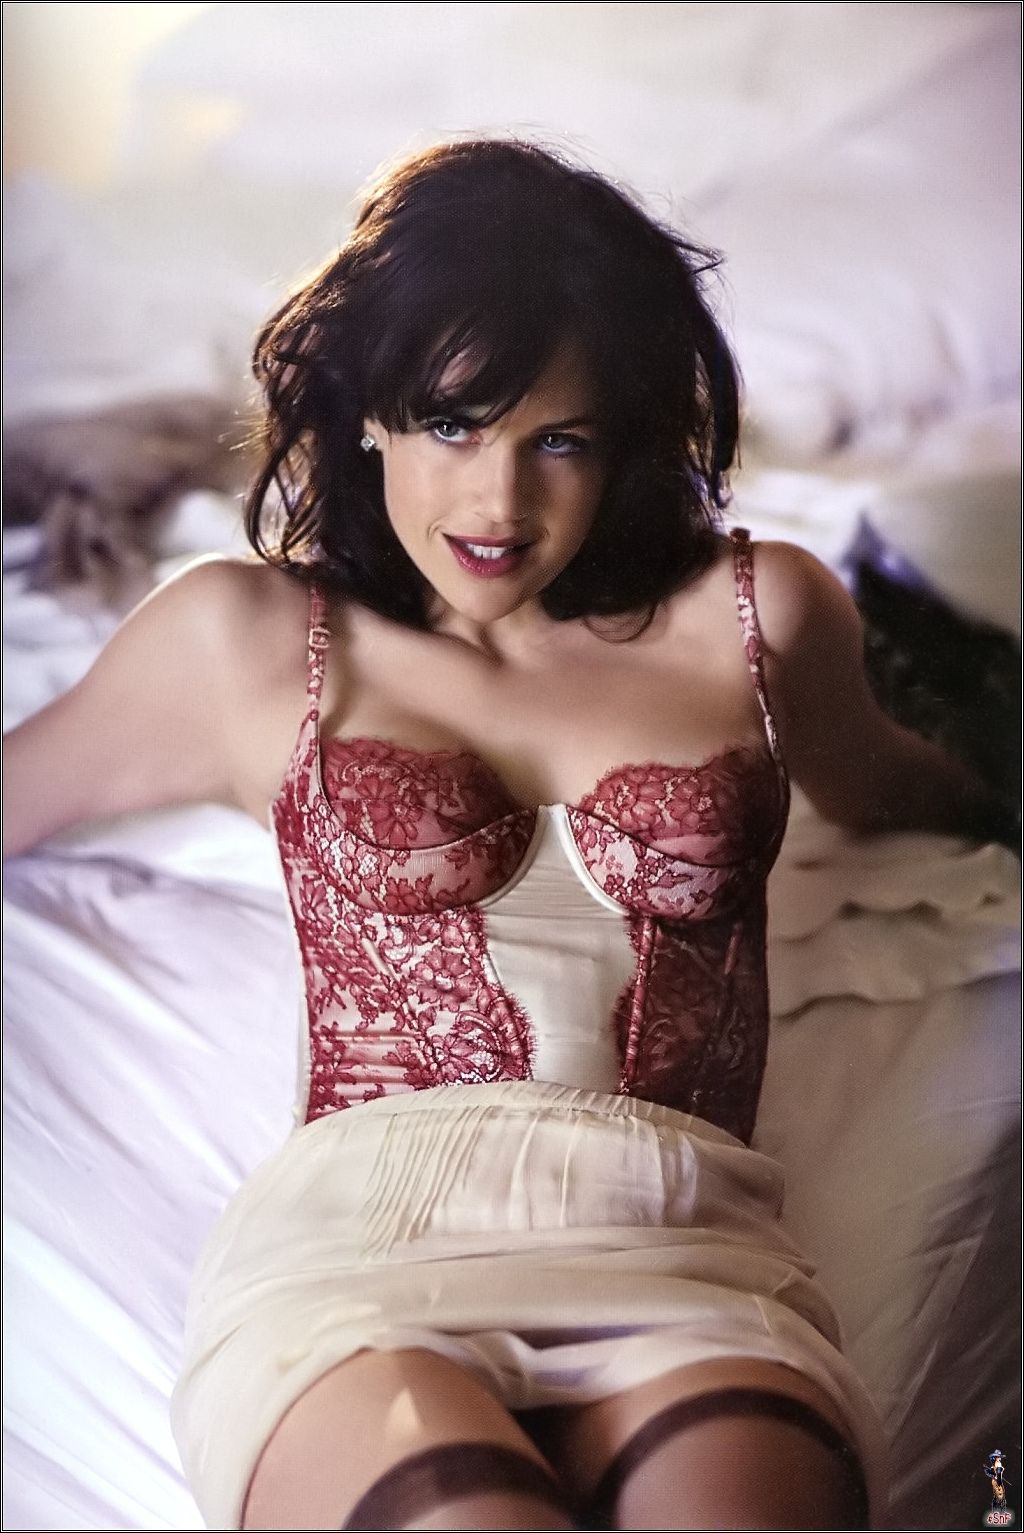 Carla gugino cameron frye s blog for Hot images blog